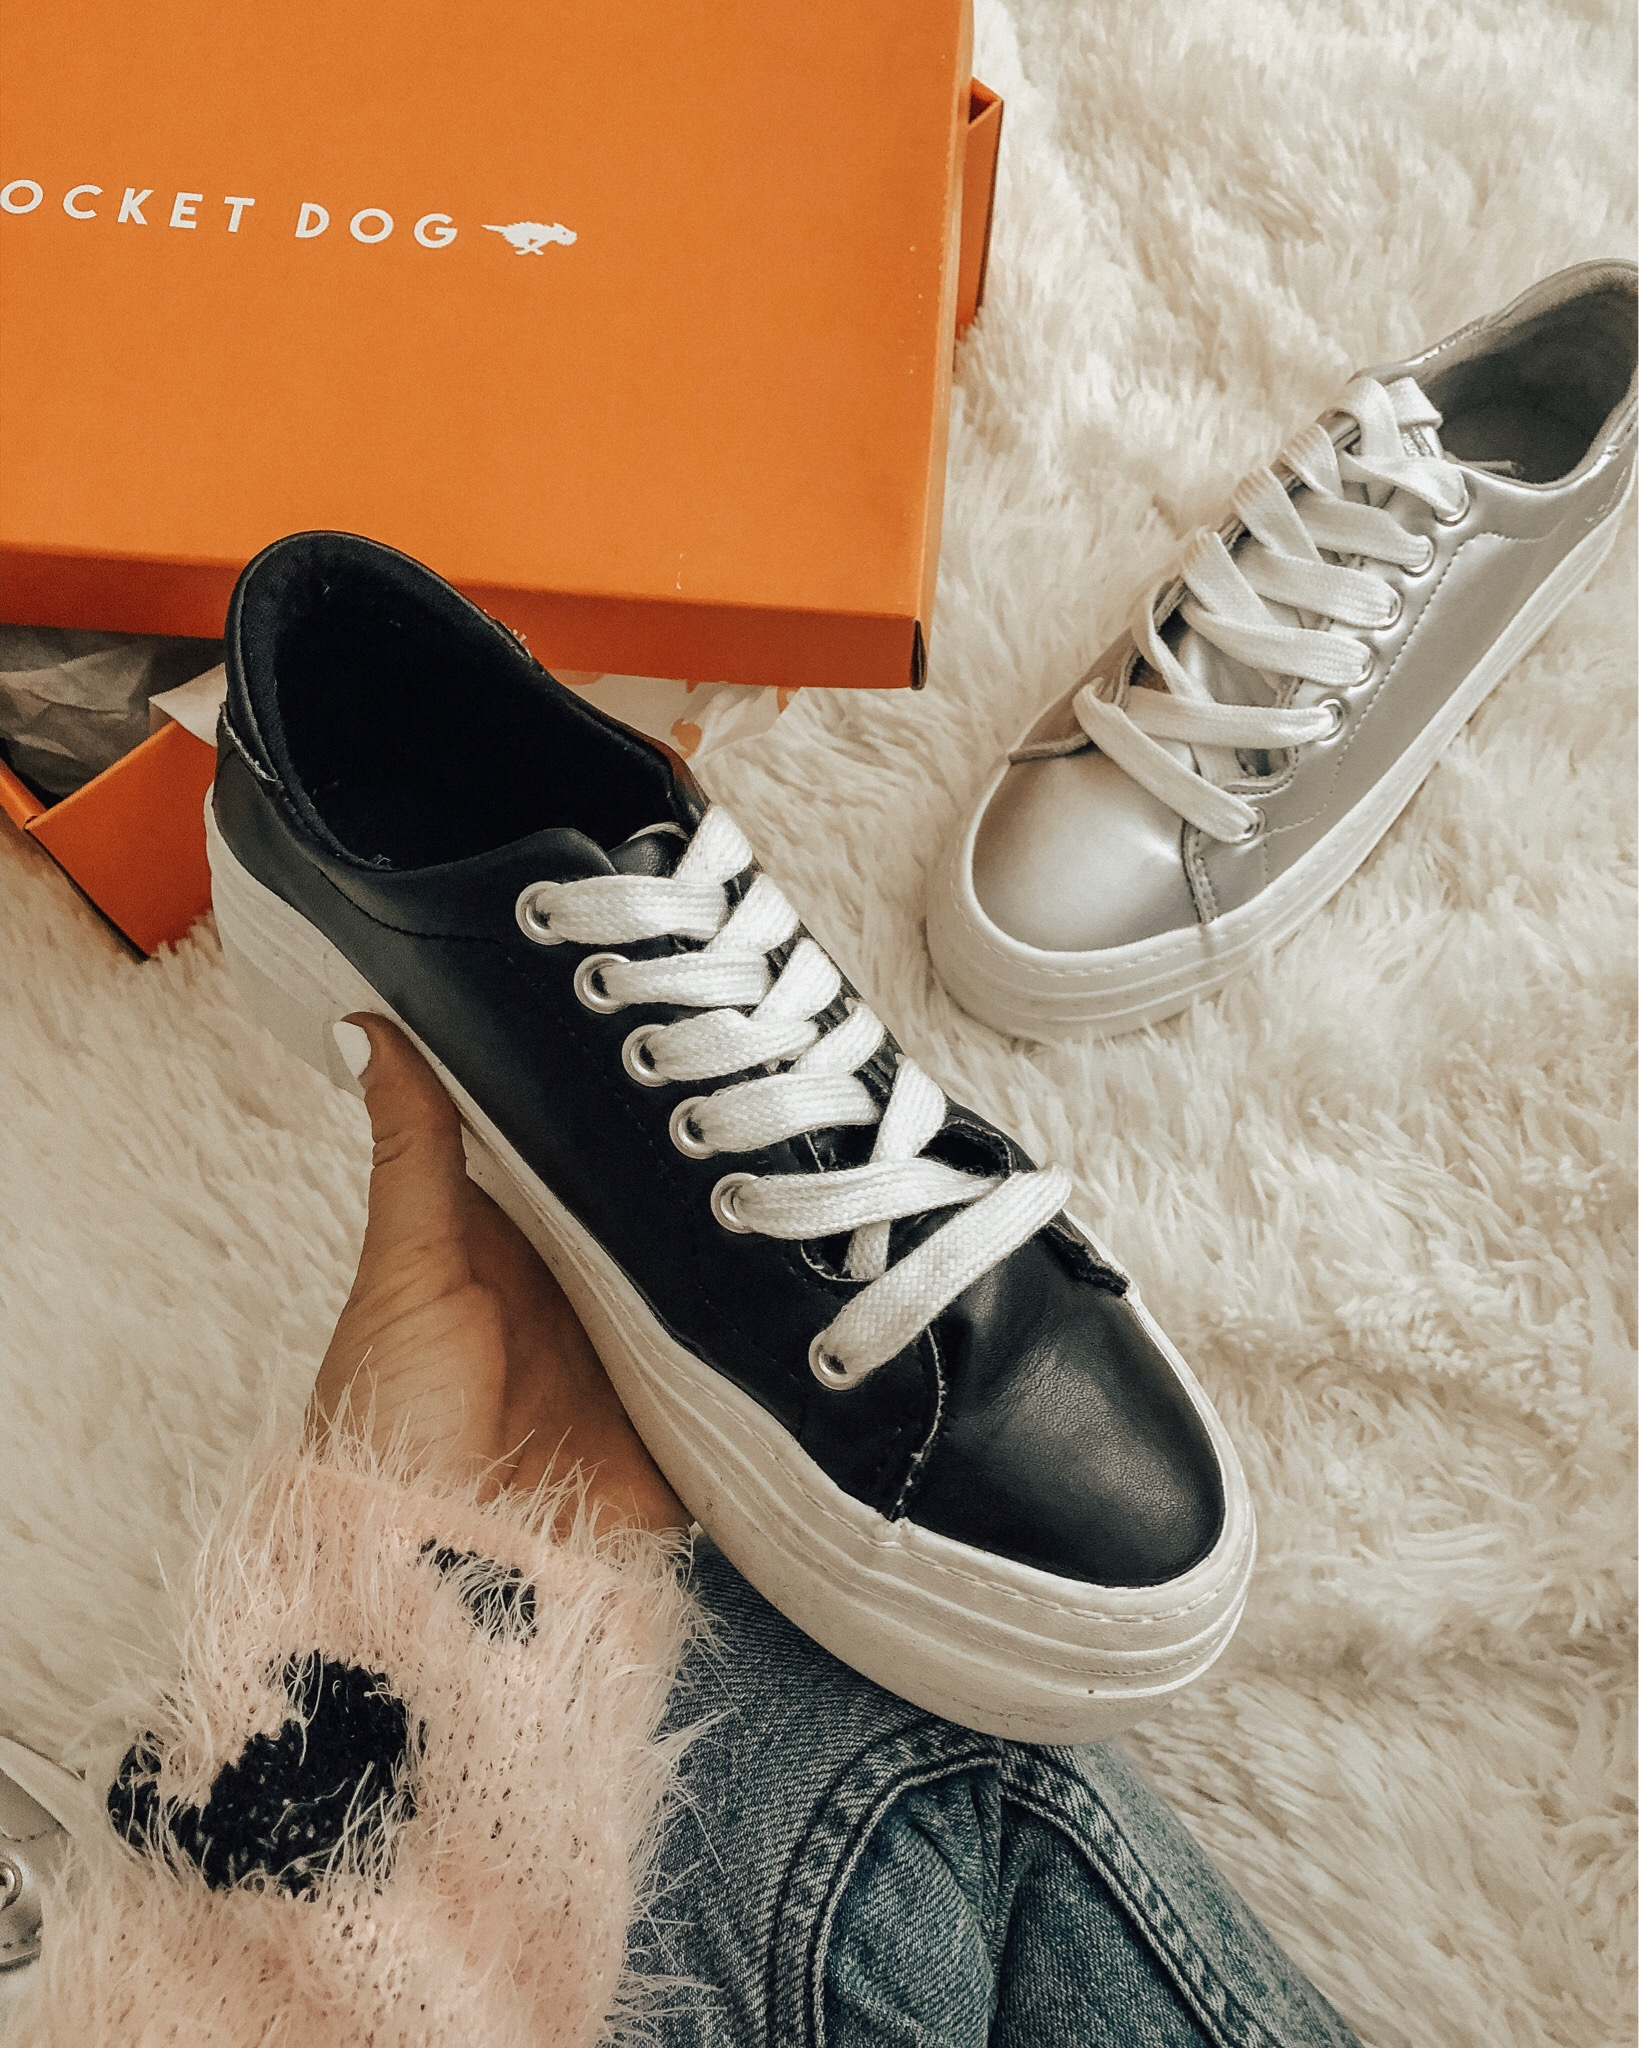 NOVEMBER TOP 10- Jaclyn De Leon Style + rocketdog platform sneakers + tennis shoes + fall shoe trends + casual style + mom style + what to wear with denim + leopard sweater + top selling items